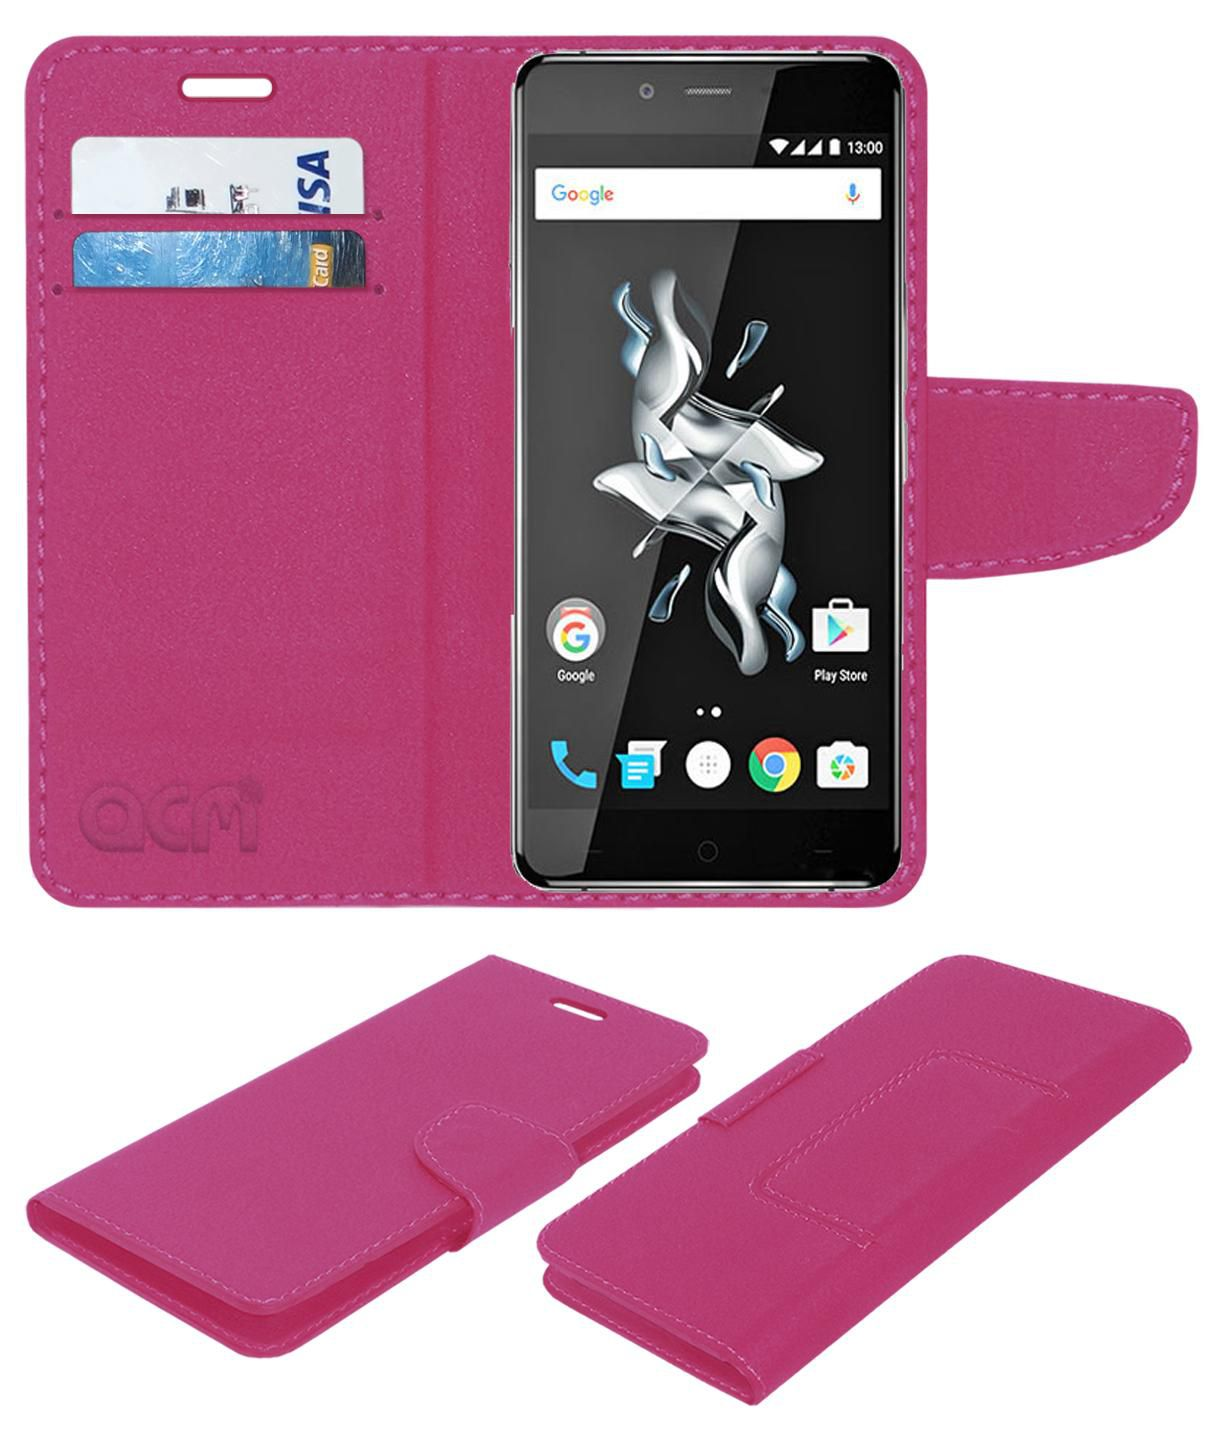 One Plus X Flip Cover by ACM - Pink